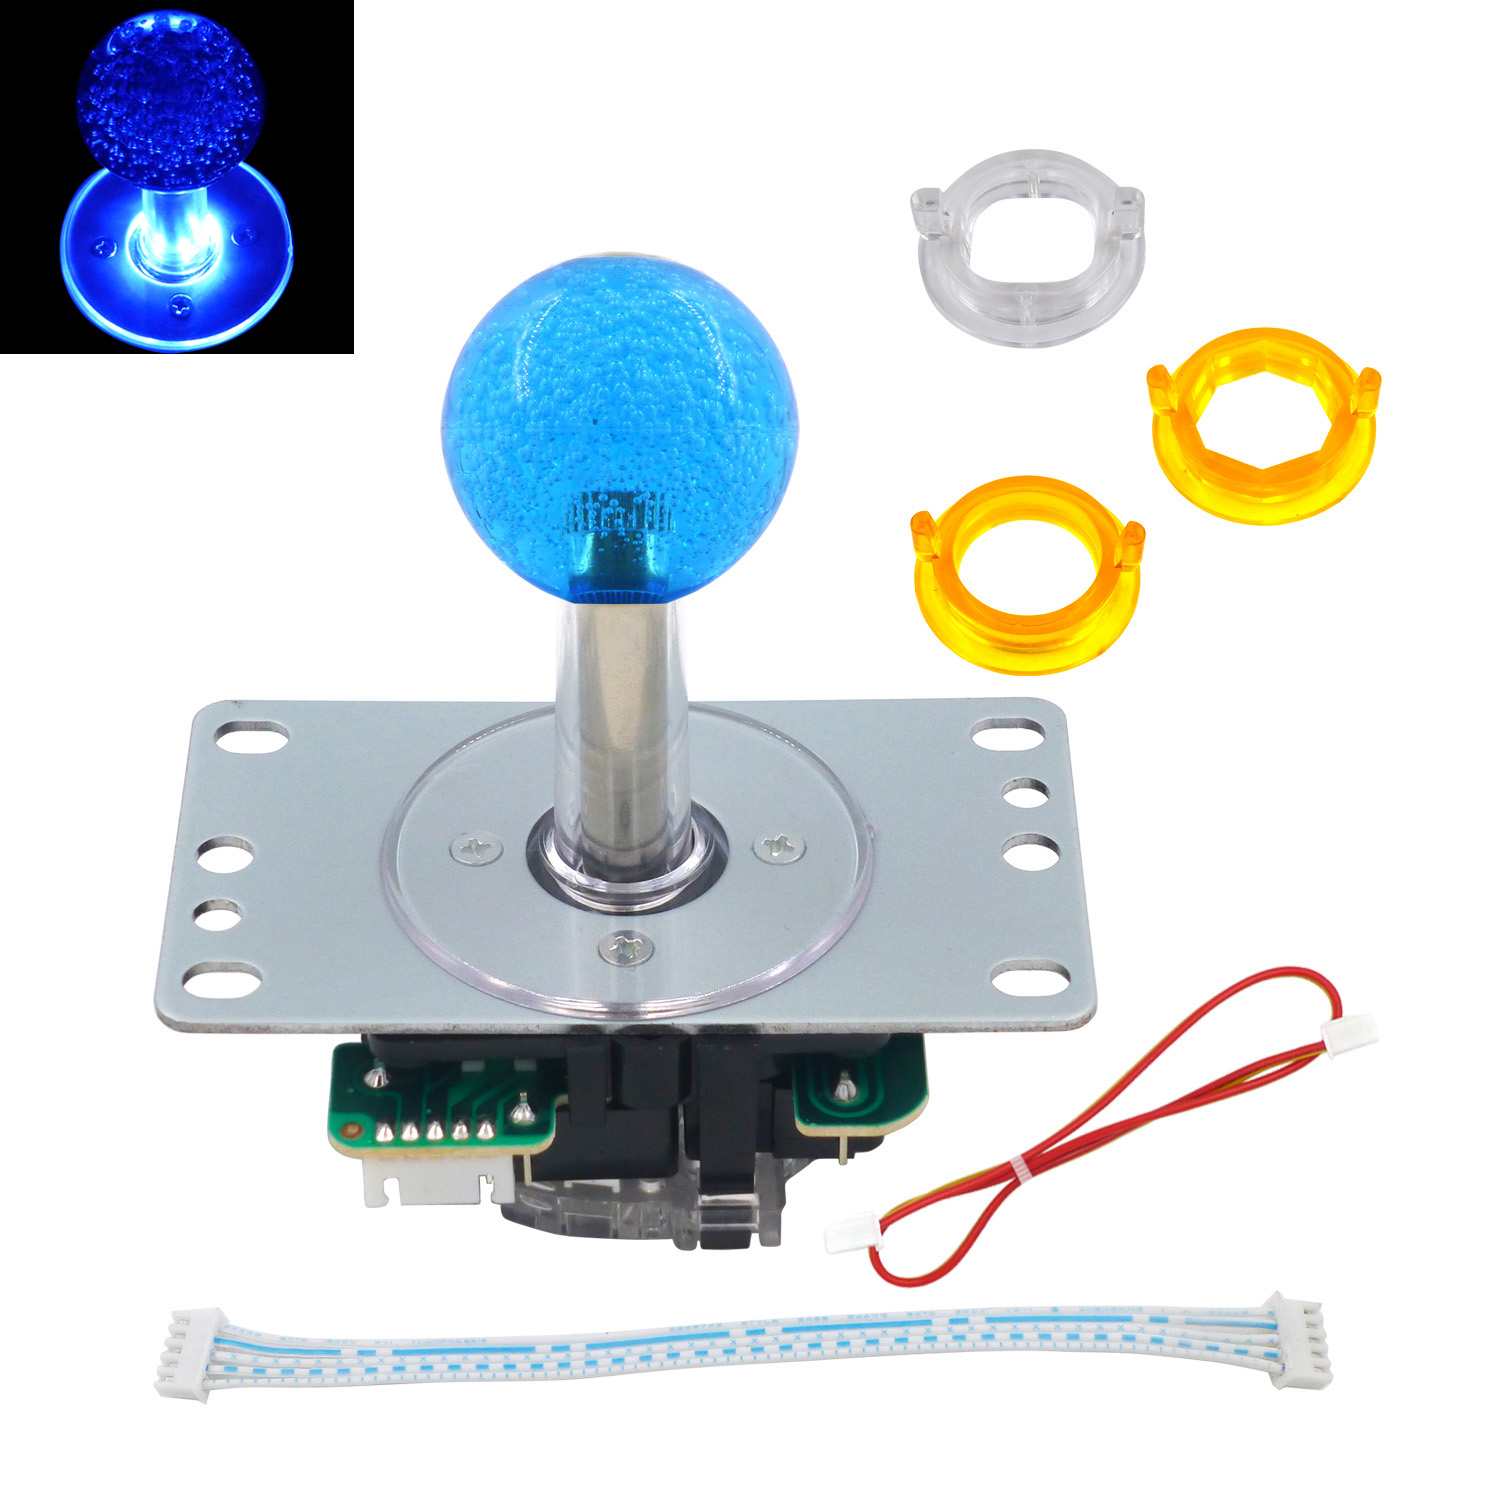 SJ@JX Arcade LED Joystick SANWA Style Fight Light Stick Circular Octagonal Limiter for Retro Pie Raspberry Pi MAME